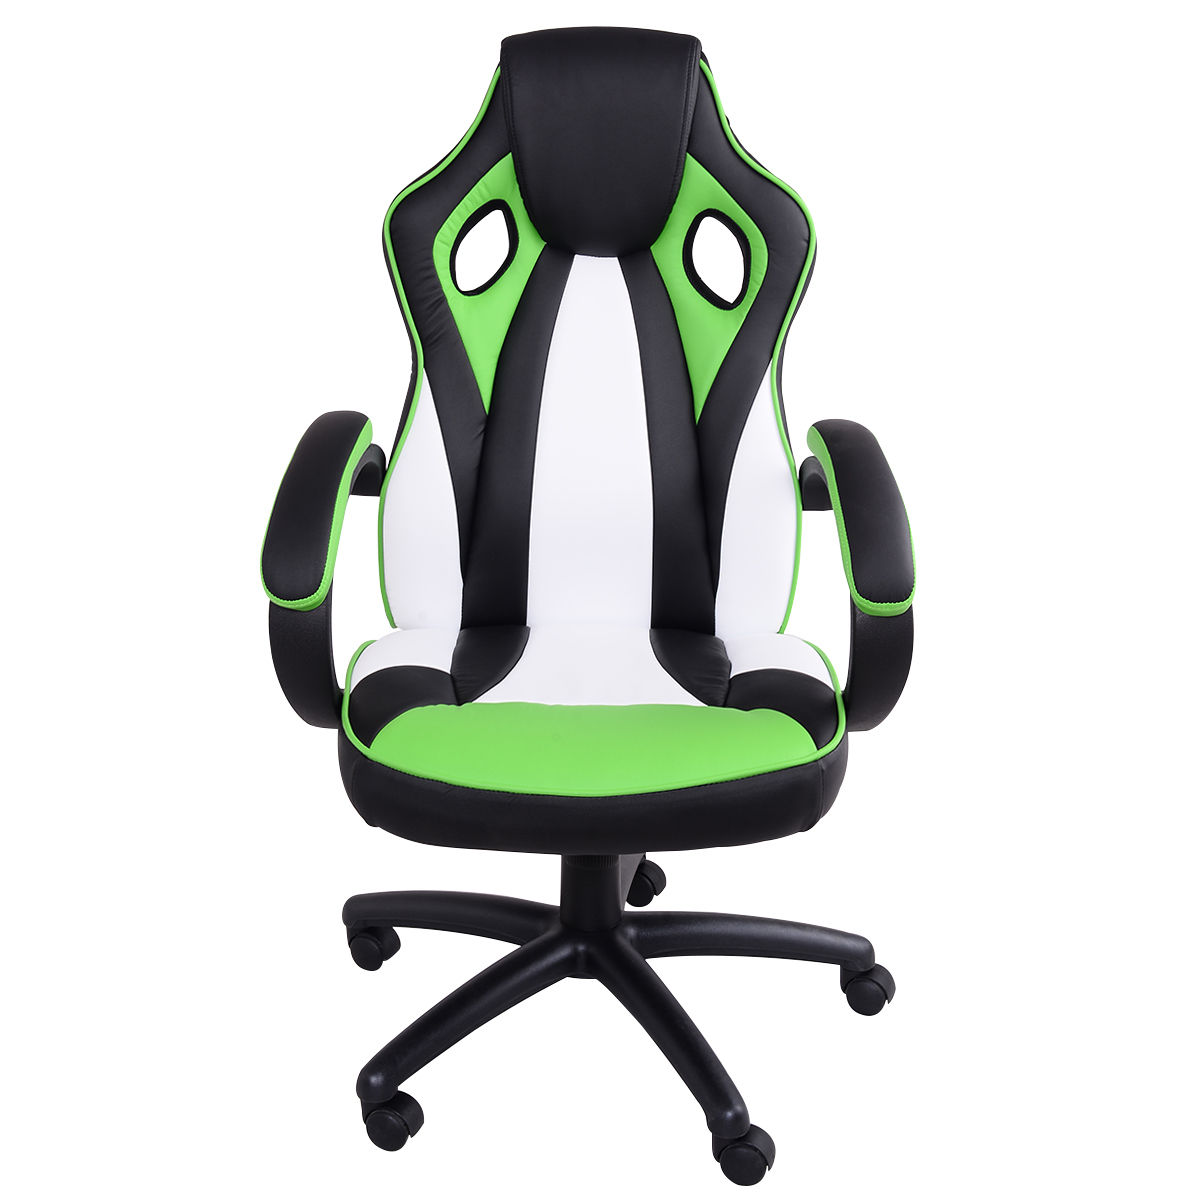 Gaming Chair Cheap Giantex Executive Racing Office Chair High Back Pu Leather Swivel Ergonomic Computer Chair Modern Gaming Chairs Hw55036 In Office Chairs From